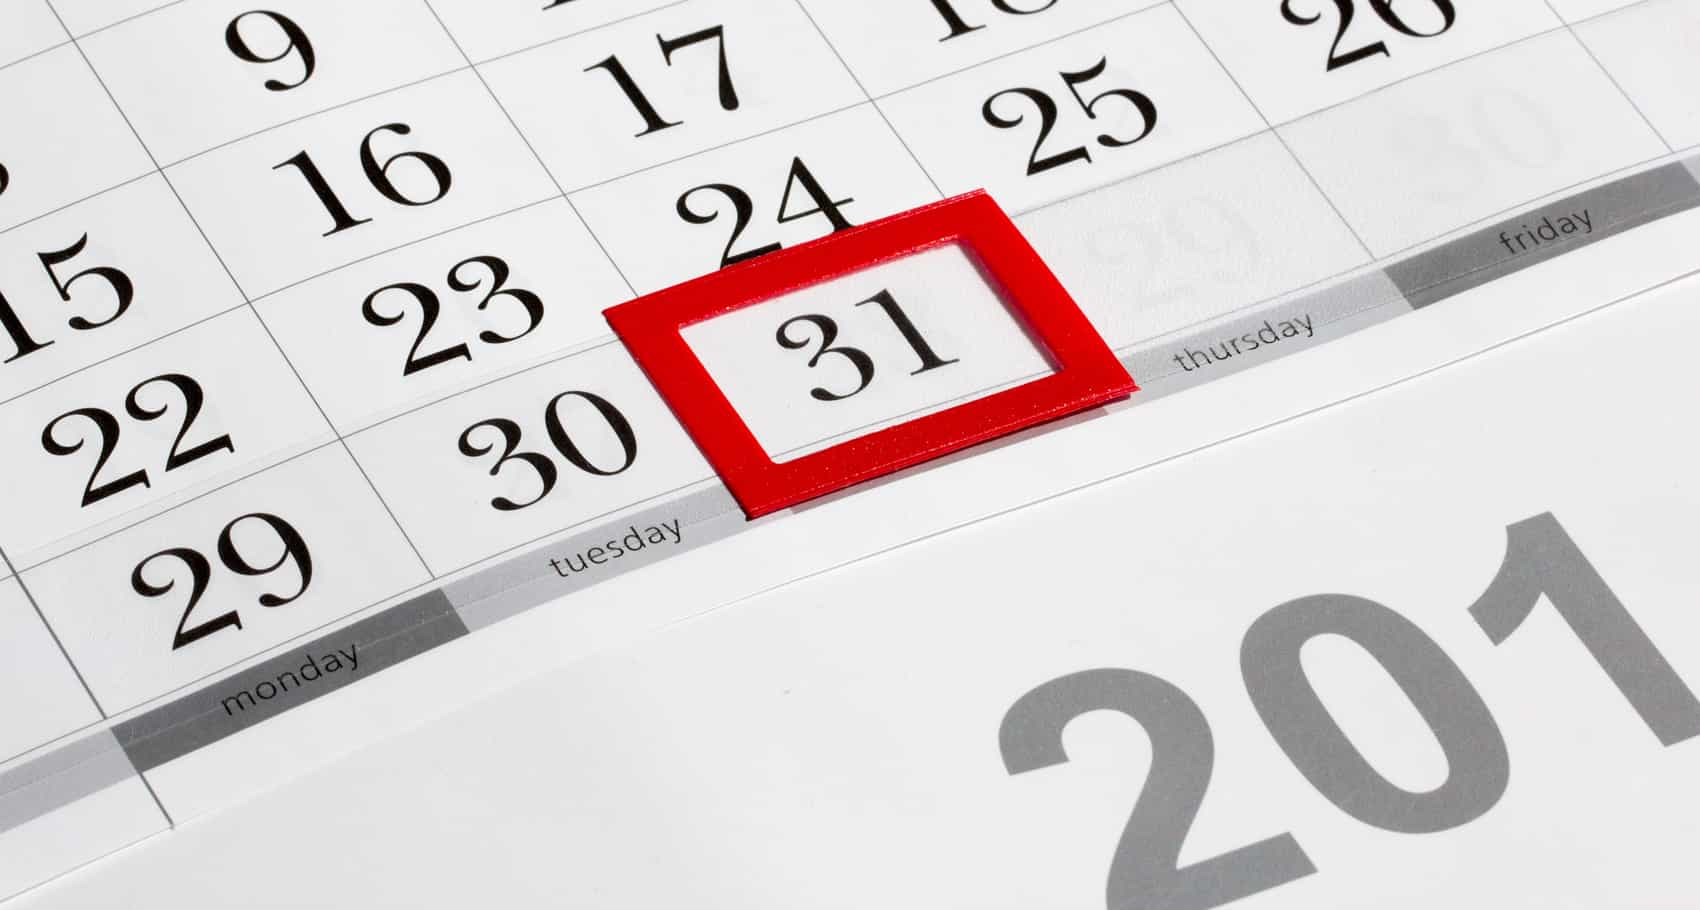 End Of Year Calendar : How to end this month and start next right